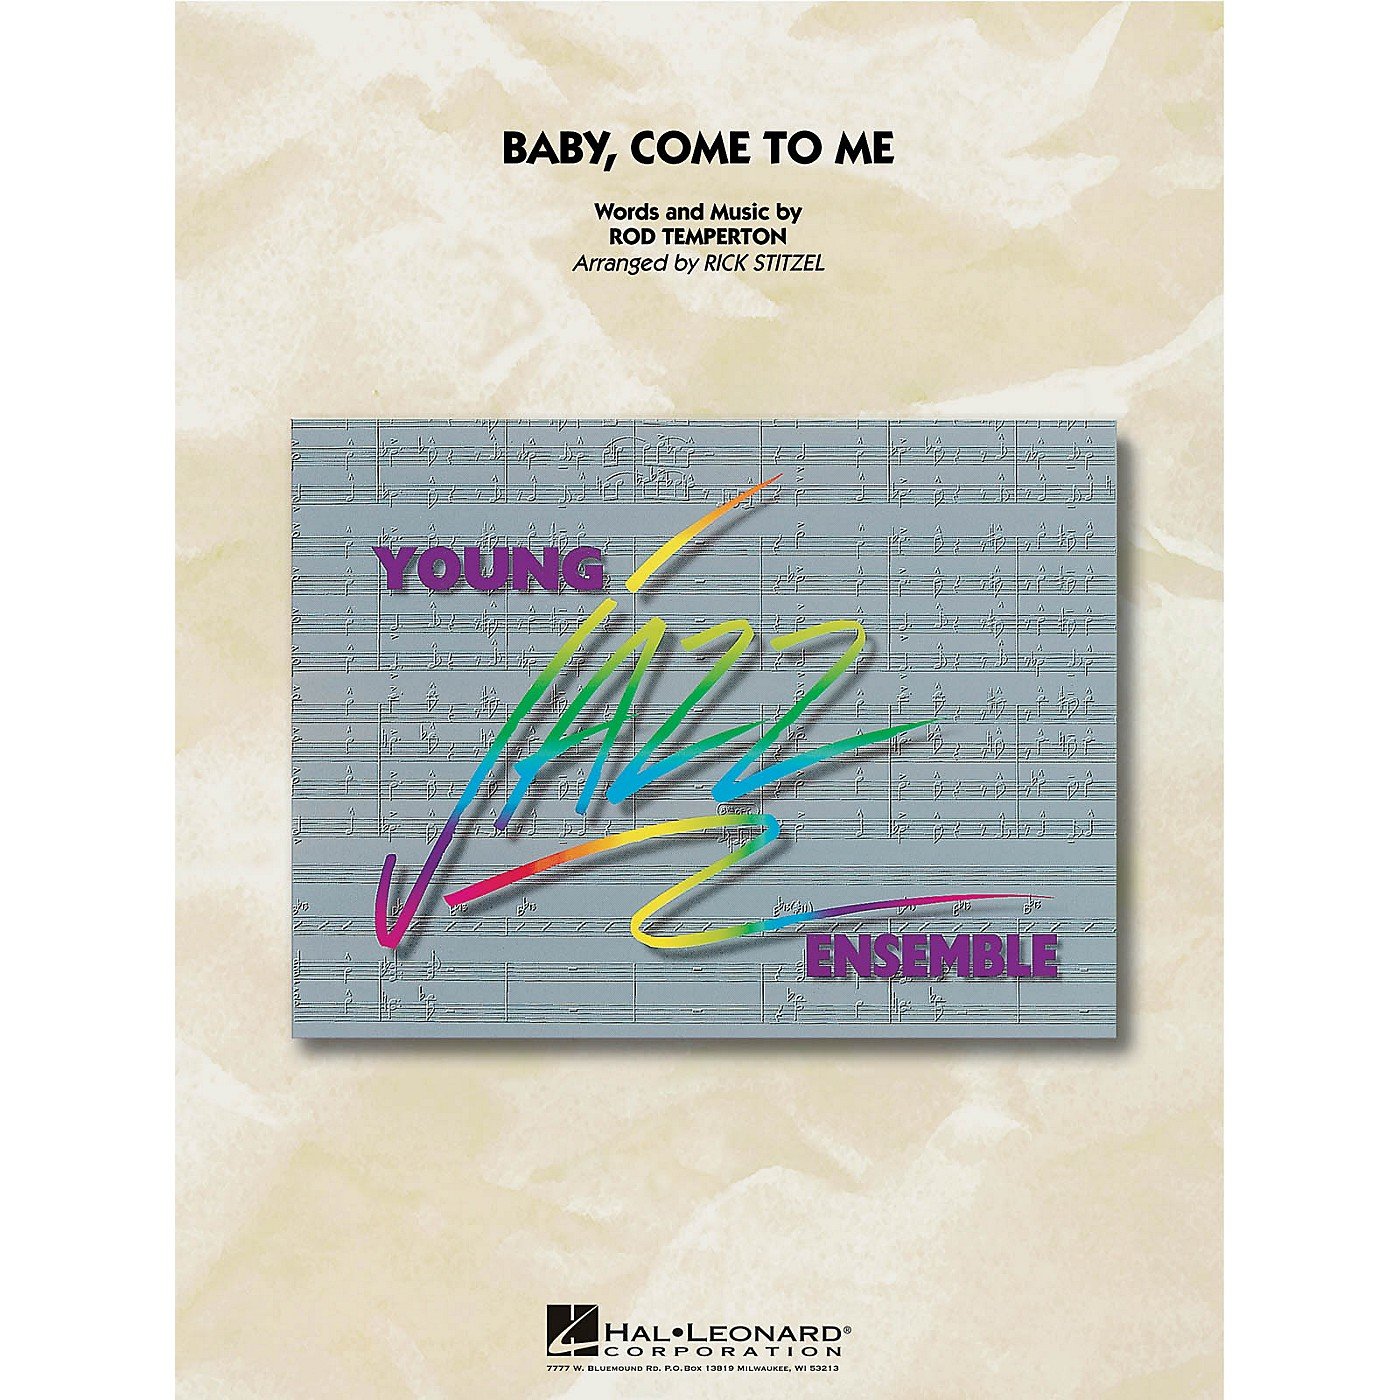 Hal Leonard Baby, Come to Me Jazz Band Level 3 by James Ingram Arranged by Rick Stitzel thumbnail